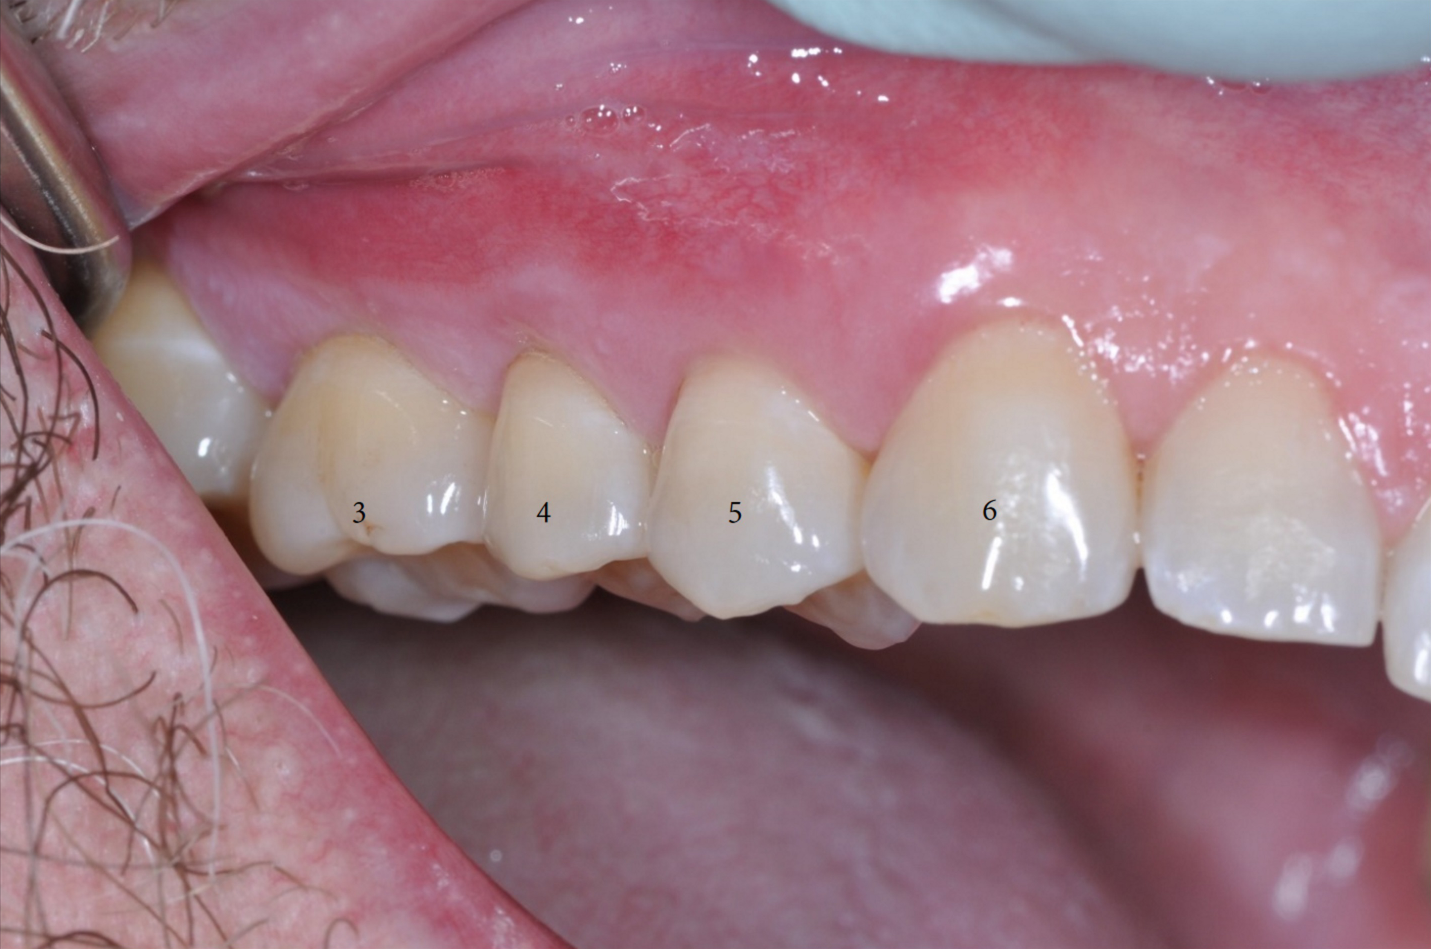 Pinhole Surgical Approach Teeth 3-6-2.png